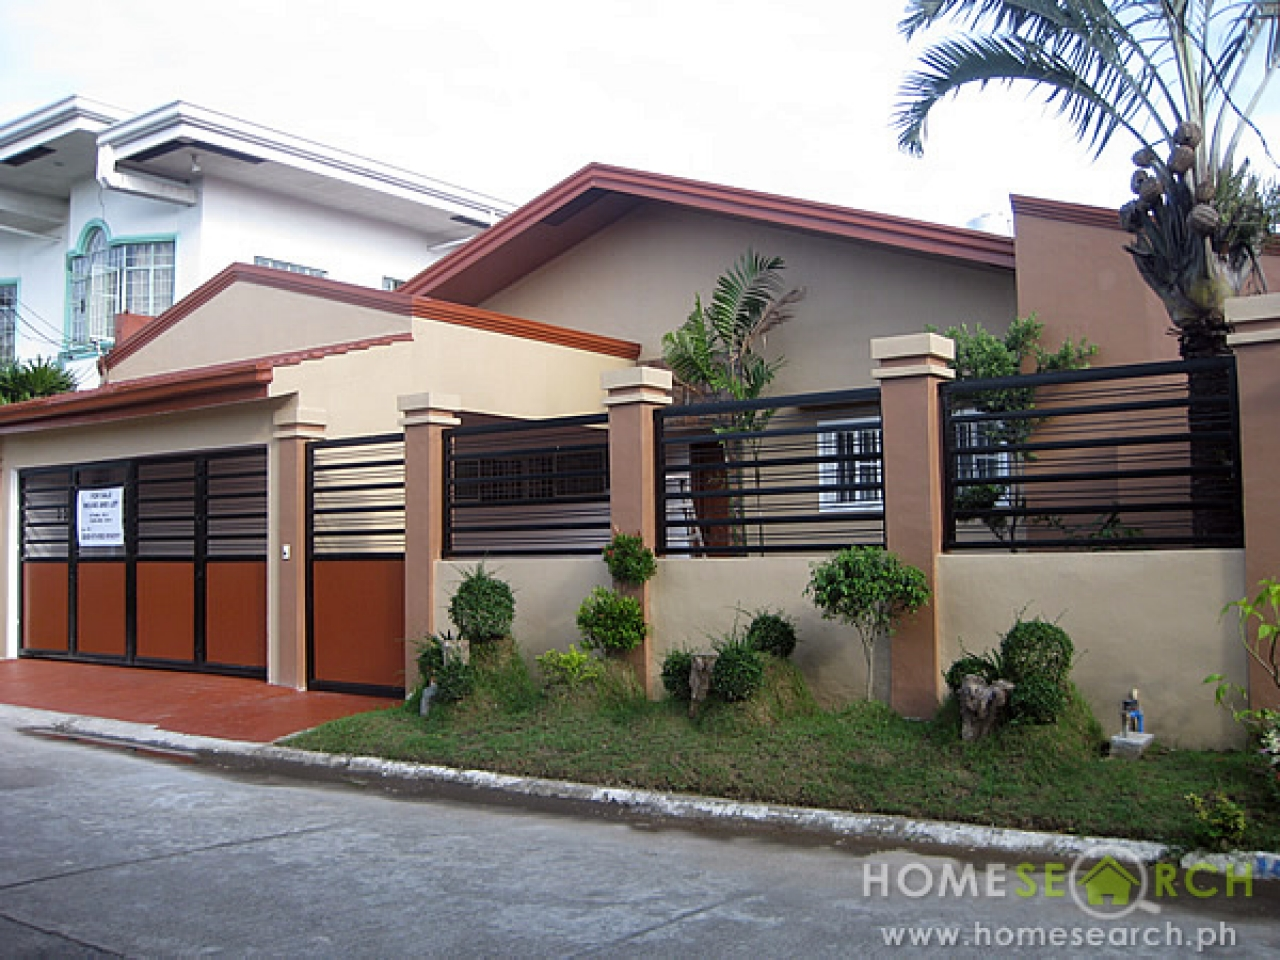 Simple bungalow house design philippines philippine for Simple home design philippines